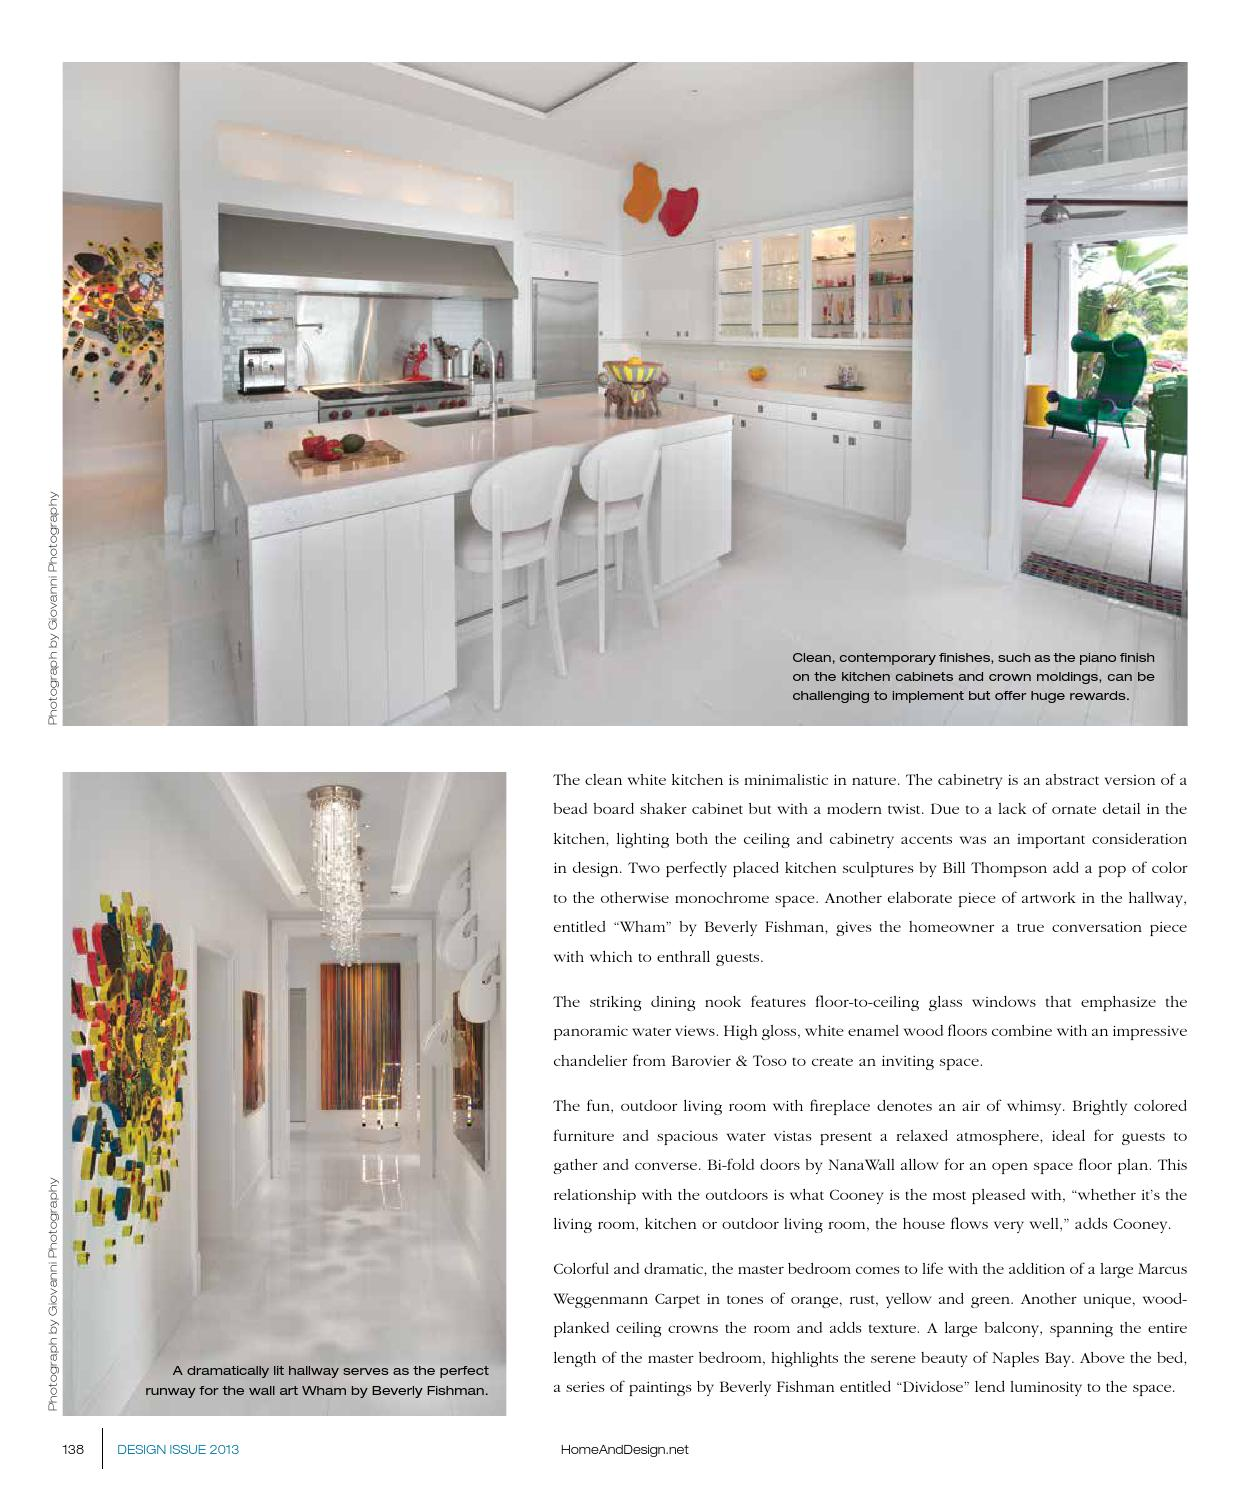 Home Design Magazine Design Issue 2013 By Jennifer Evans Issuu